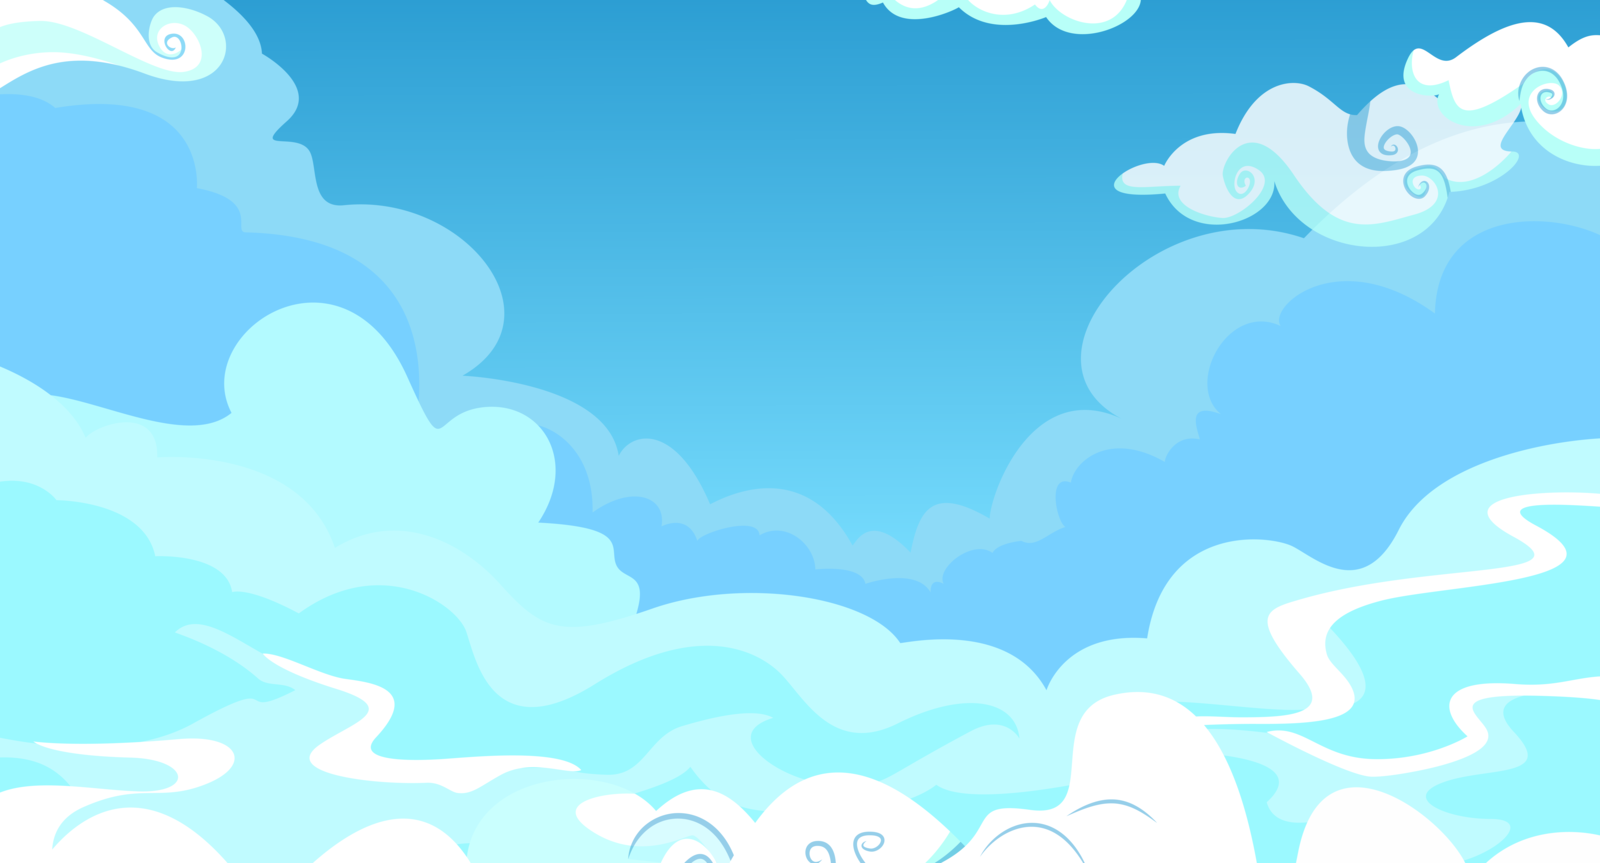 Cave clipart background. Sky images wallpaper clip